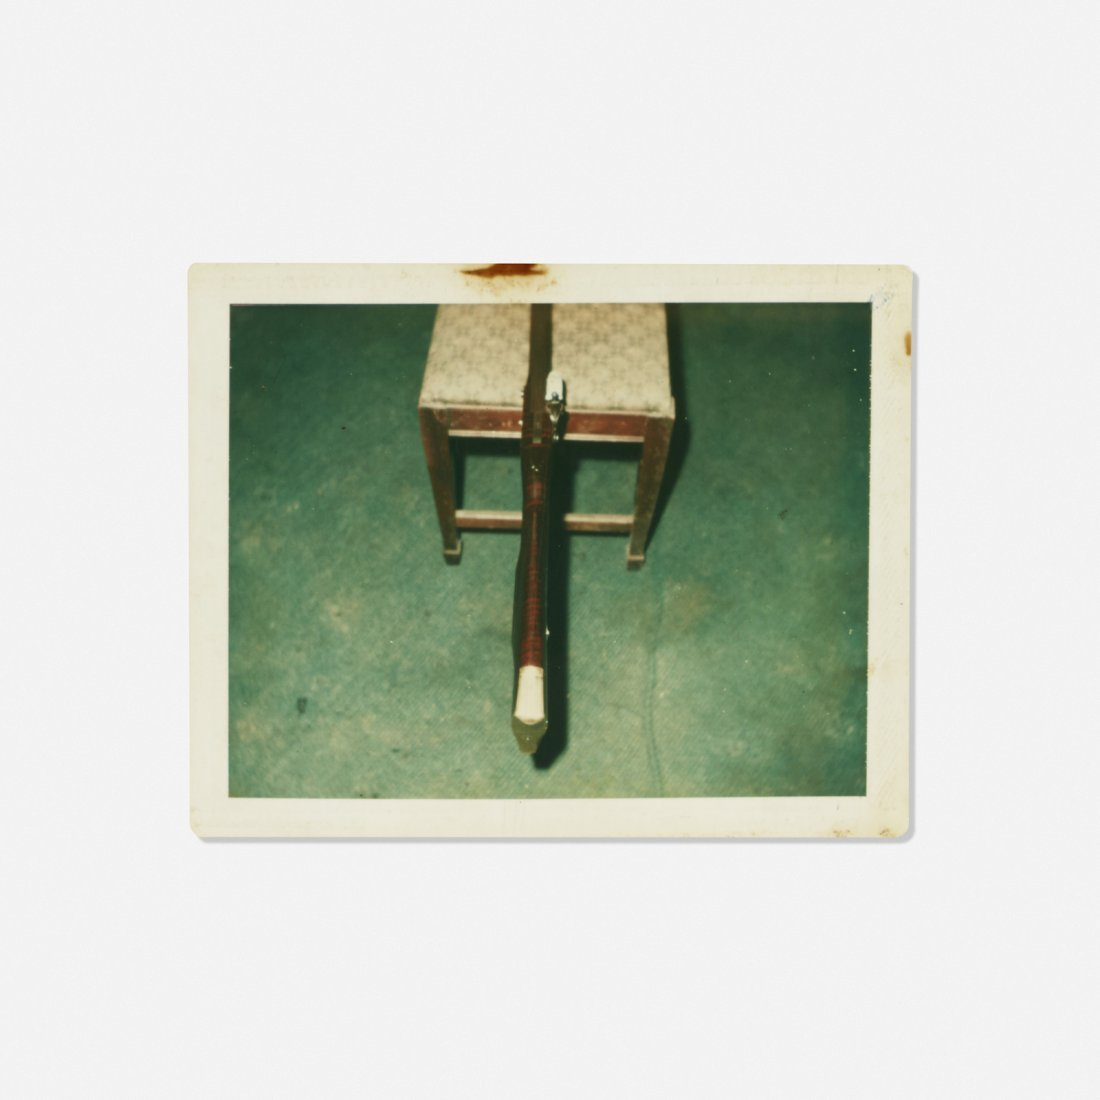 Andy Warhol, Untitled (Rifle on a Chair)